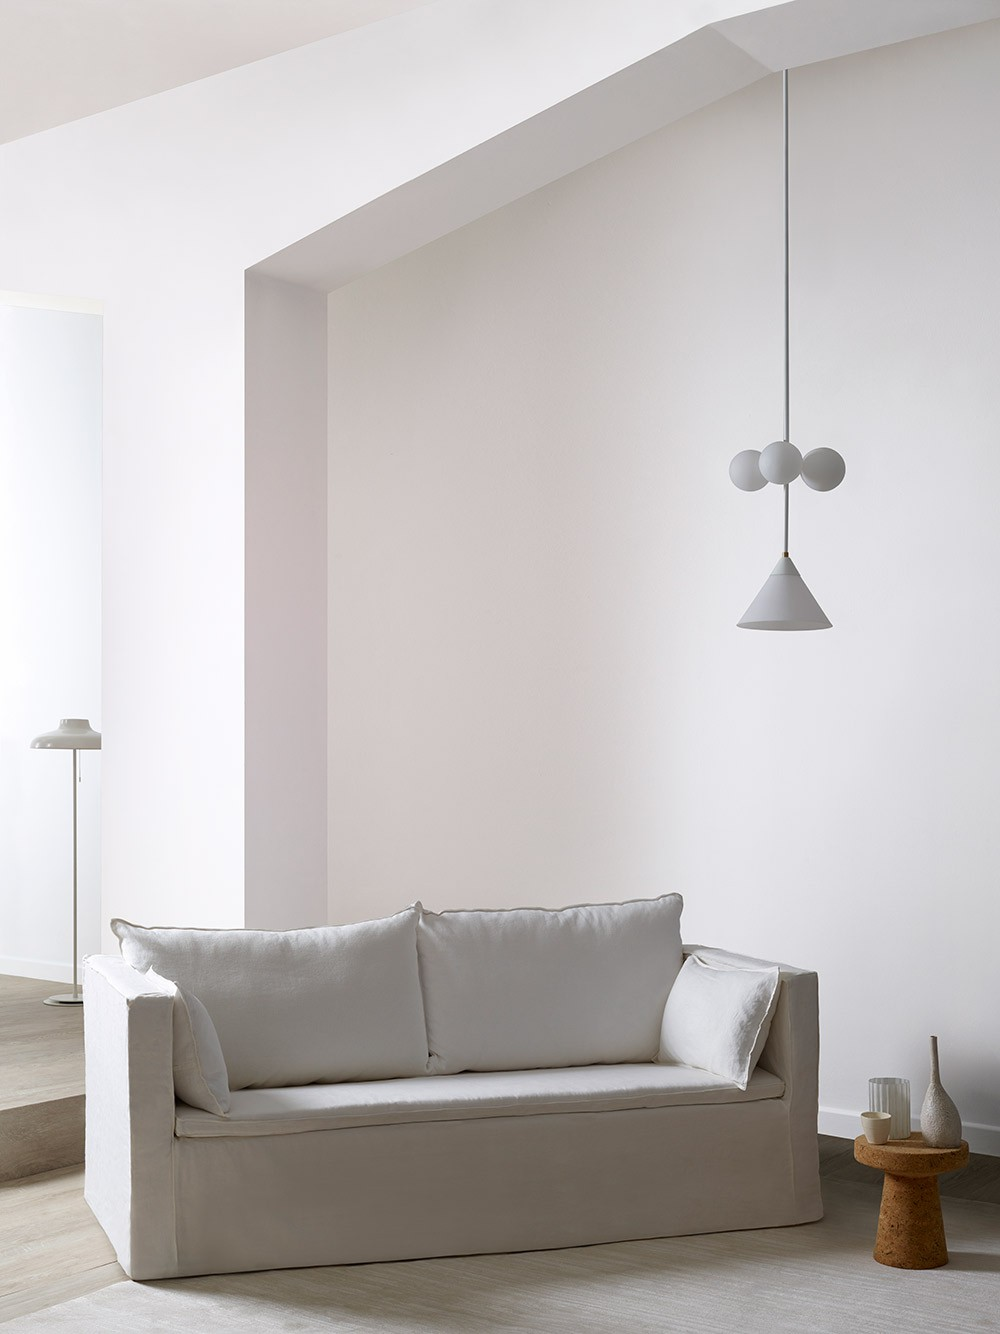 White walls with white sofa